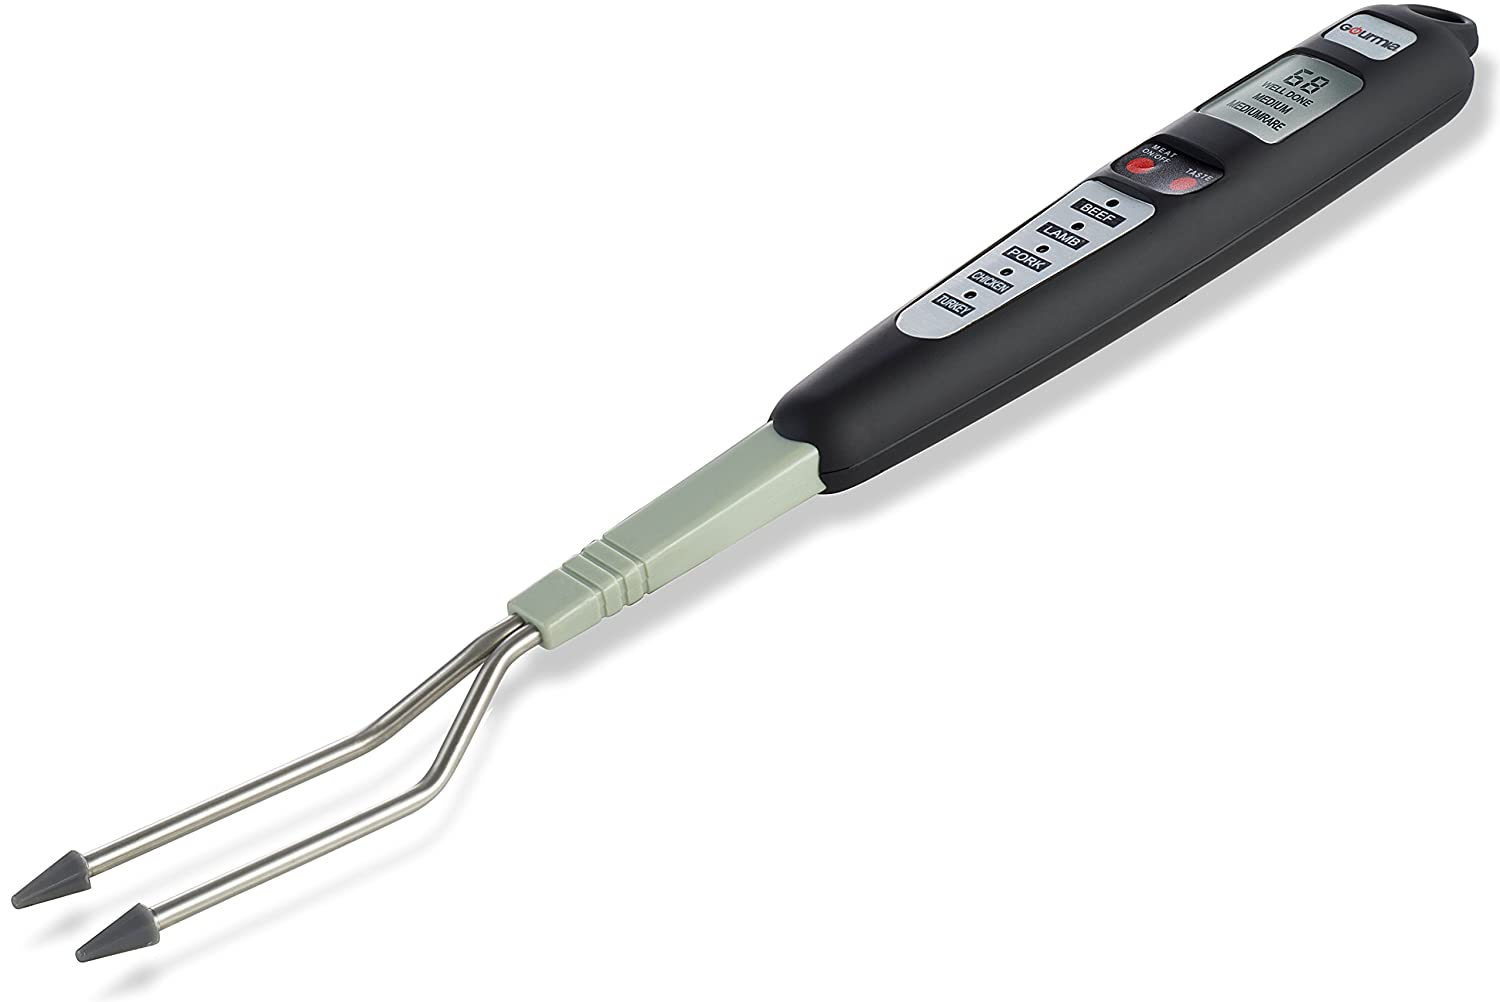 Gourmia GTH9170 Digital Meat Fork Thermometer Perfect for Grilling, Barbecue & Home Kitchen 41 x 4.2 x 2.8 cm